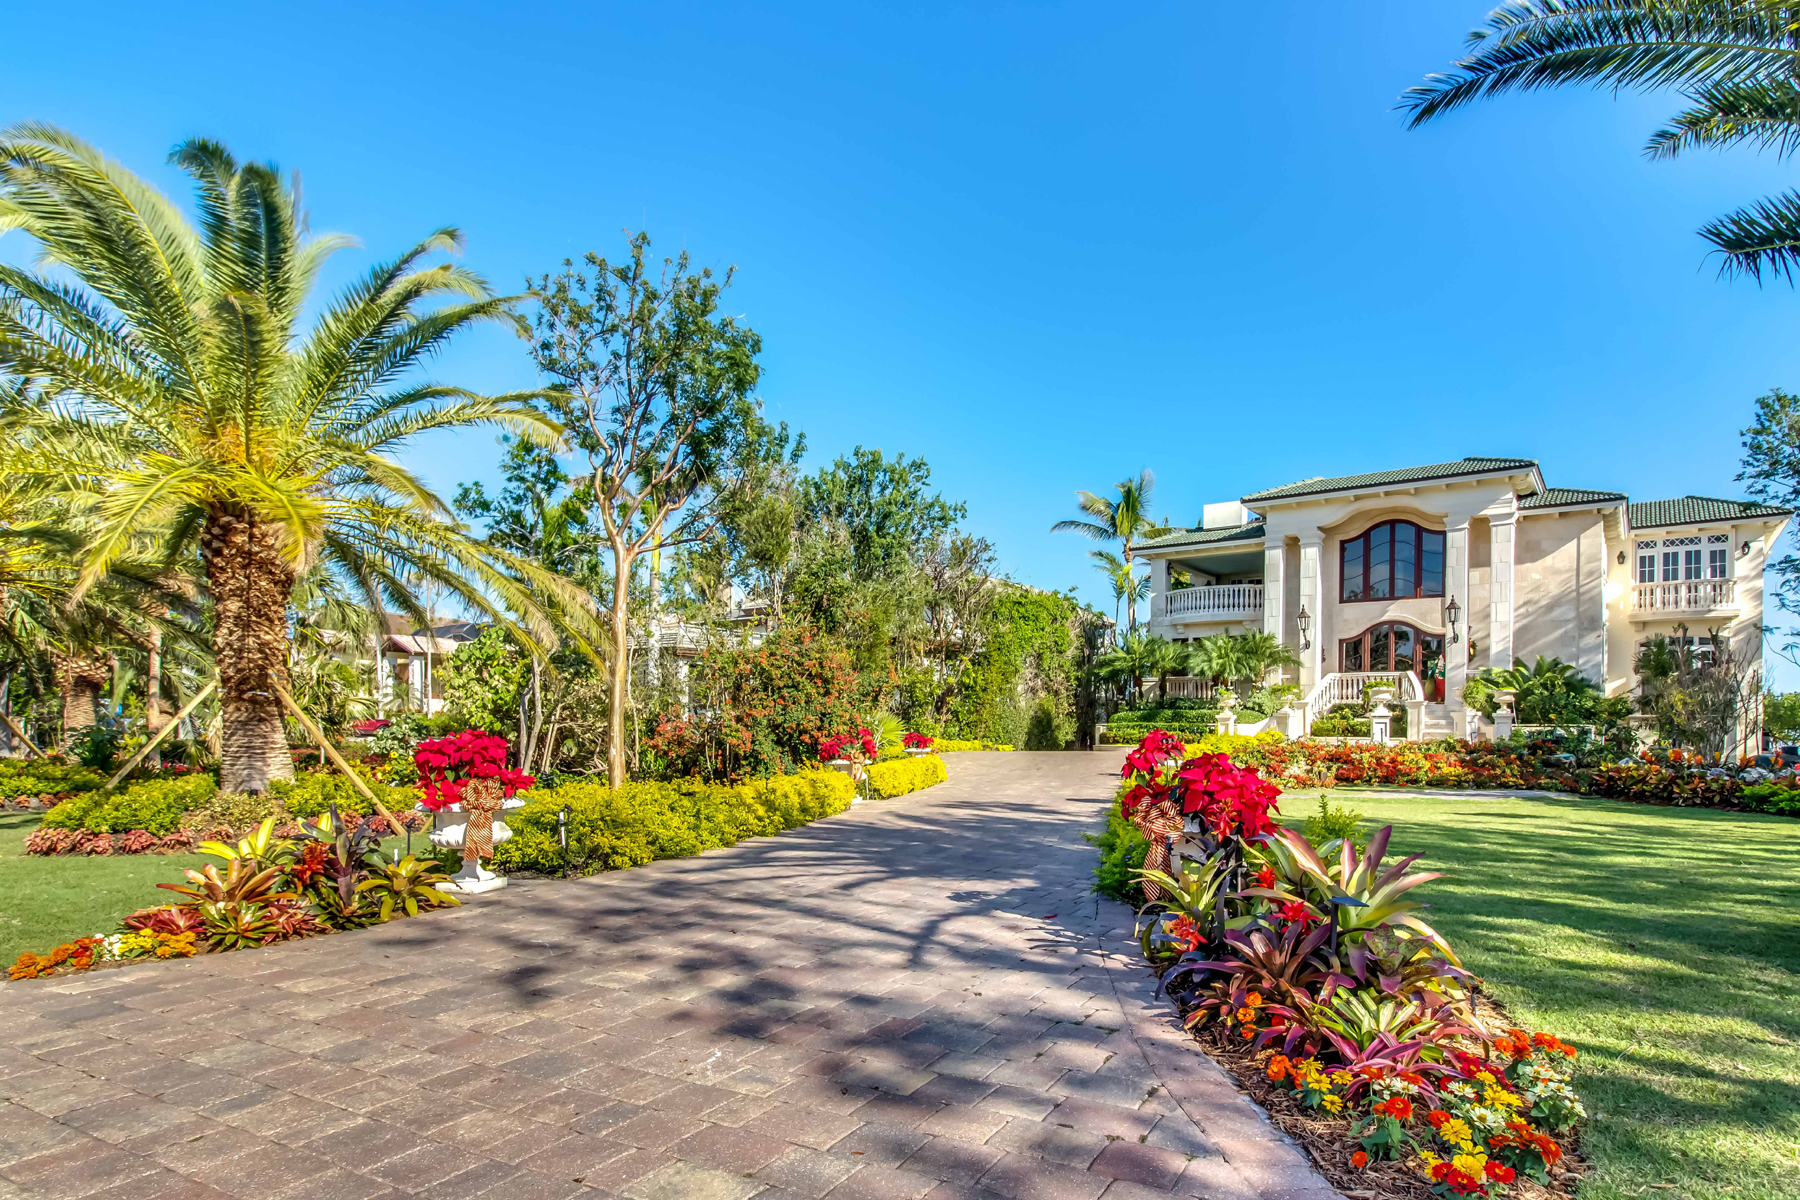 Single Family Home for Sale at Magnificent Oceanfront Home at Ocean Reef Club 14 Sunrise Cay Drive Key Largo, Florida 33037 United States